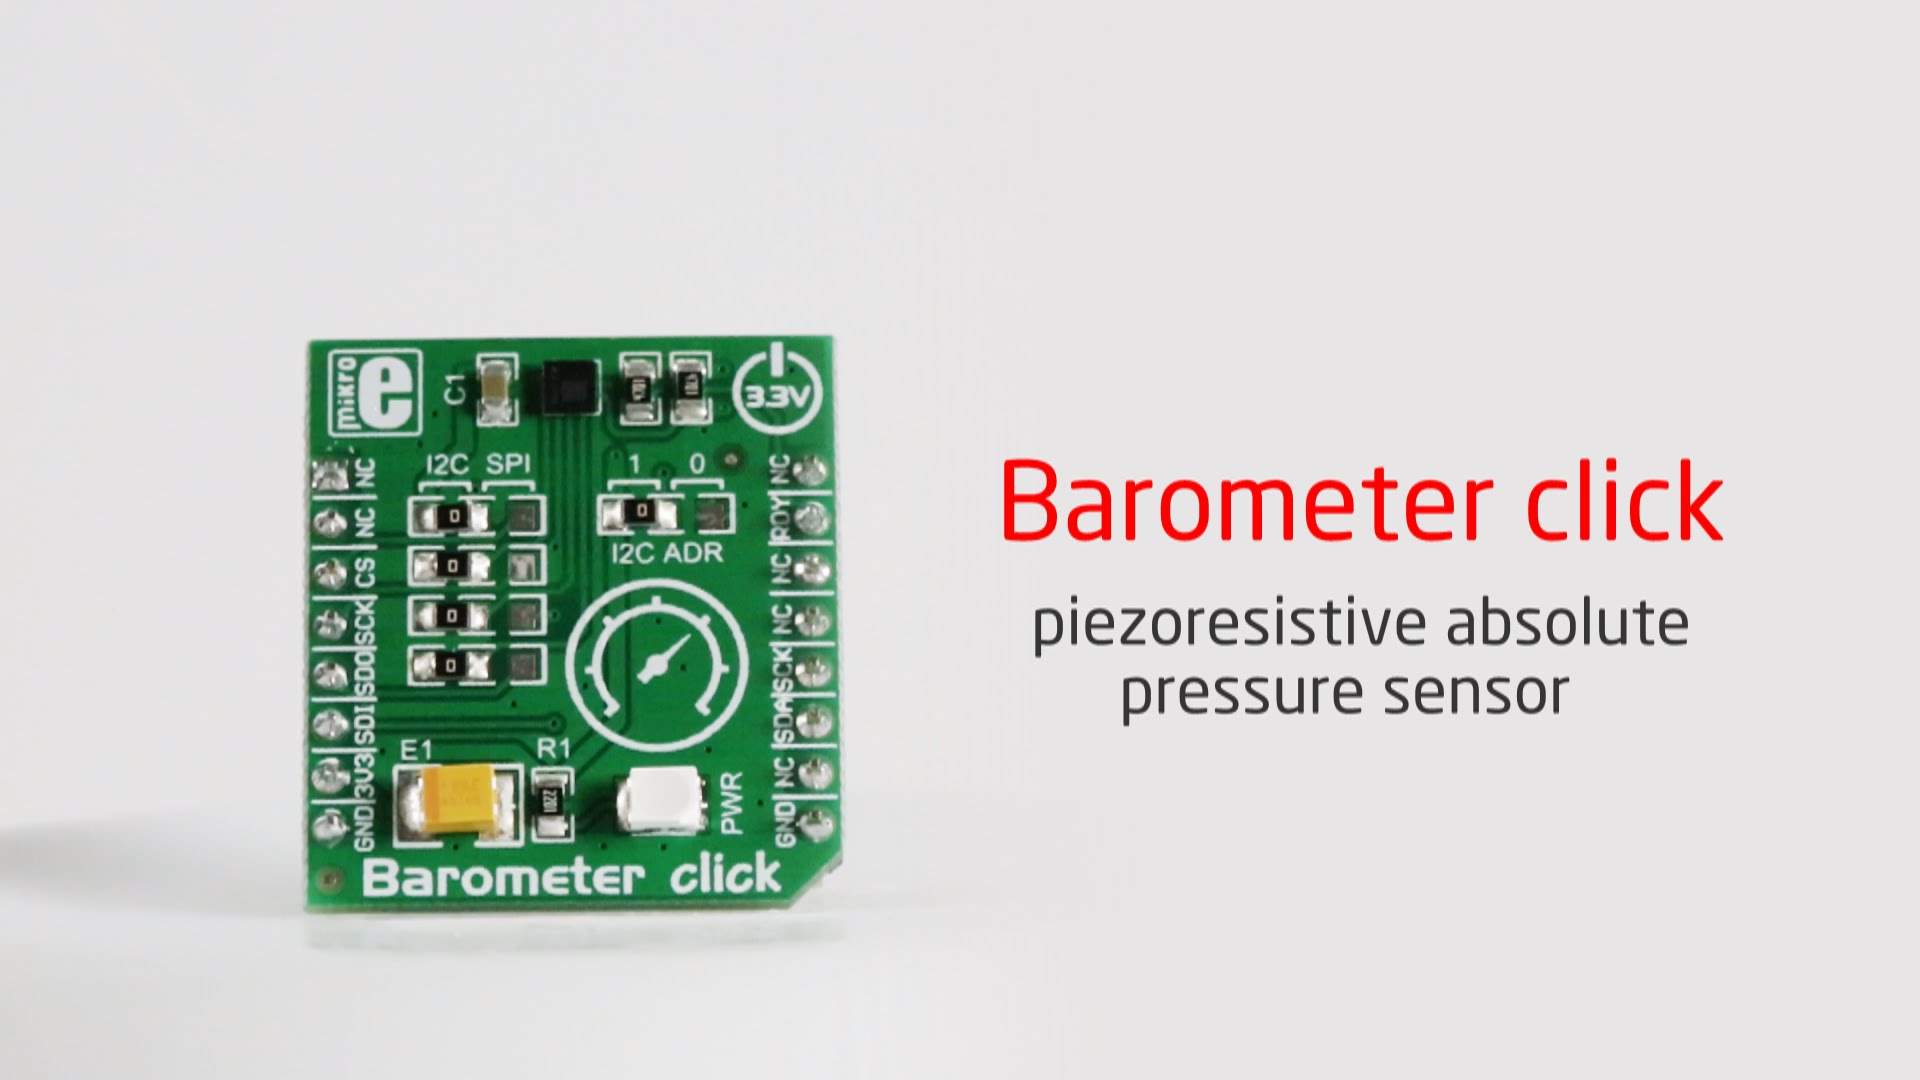 Barometer click released